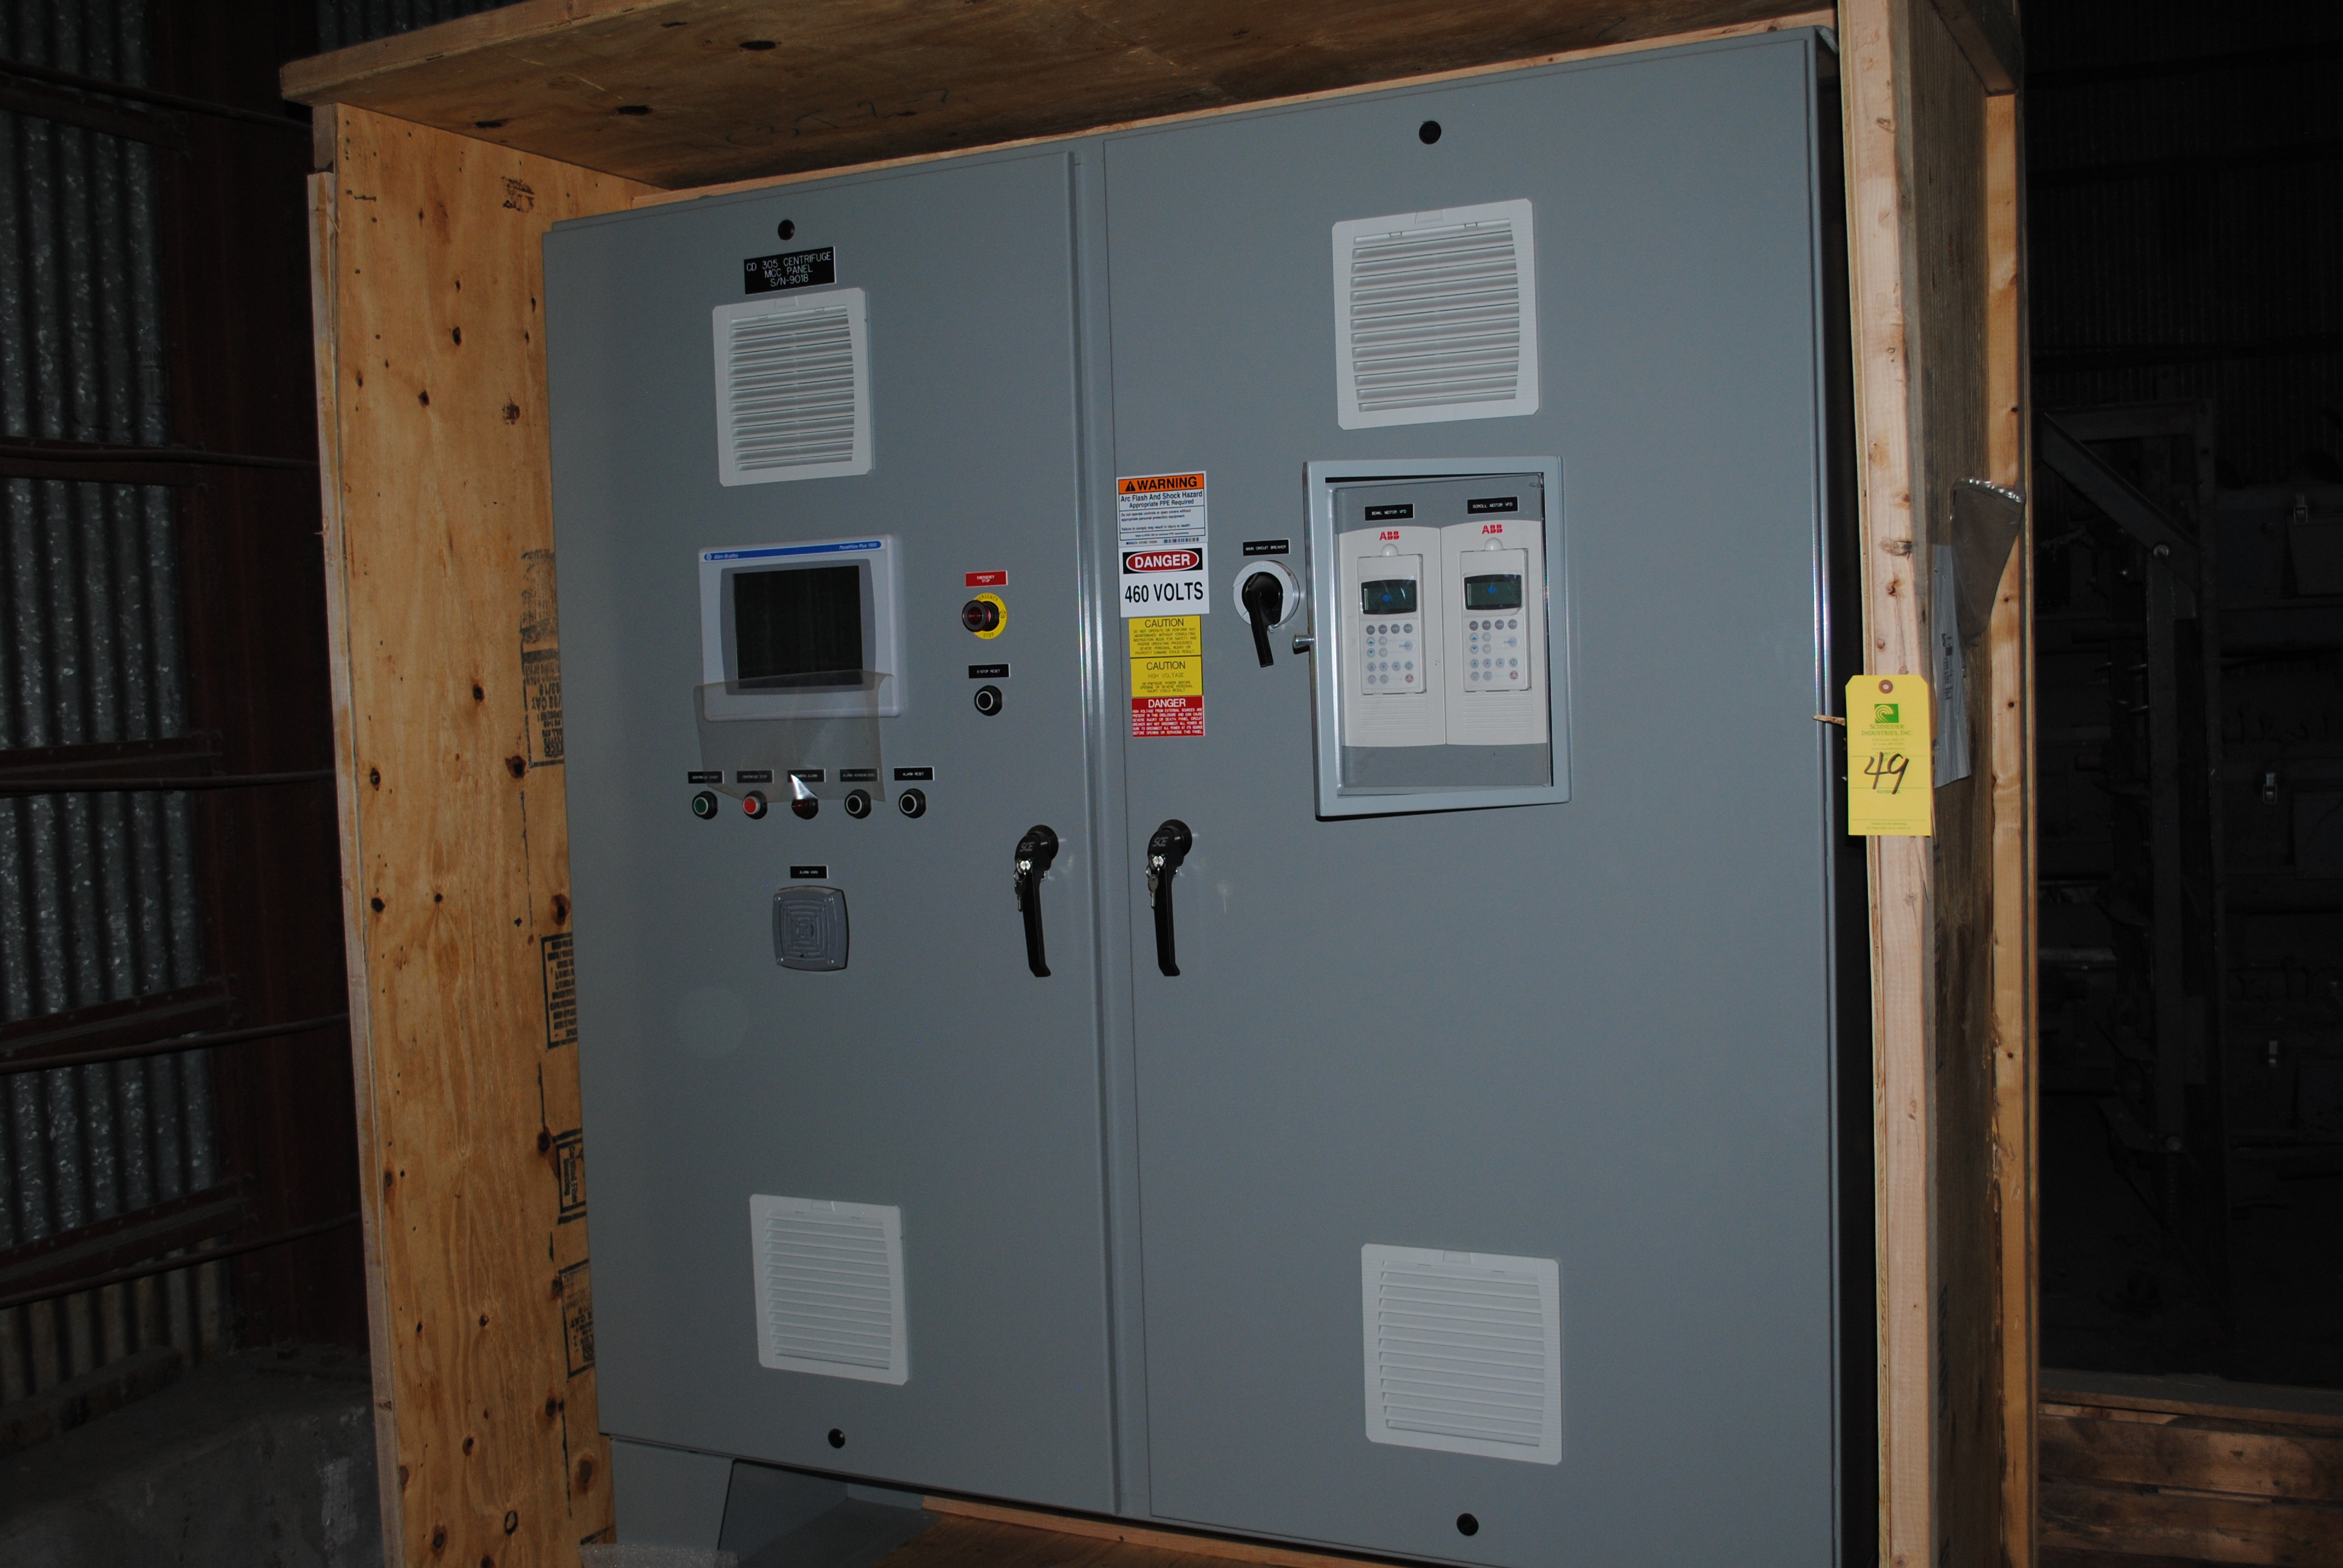 MCC control panel with ABB and Allen Bradley components